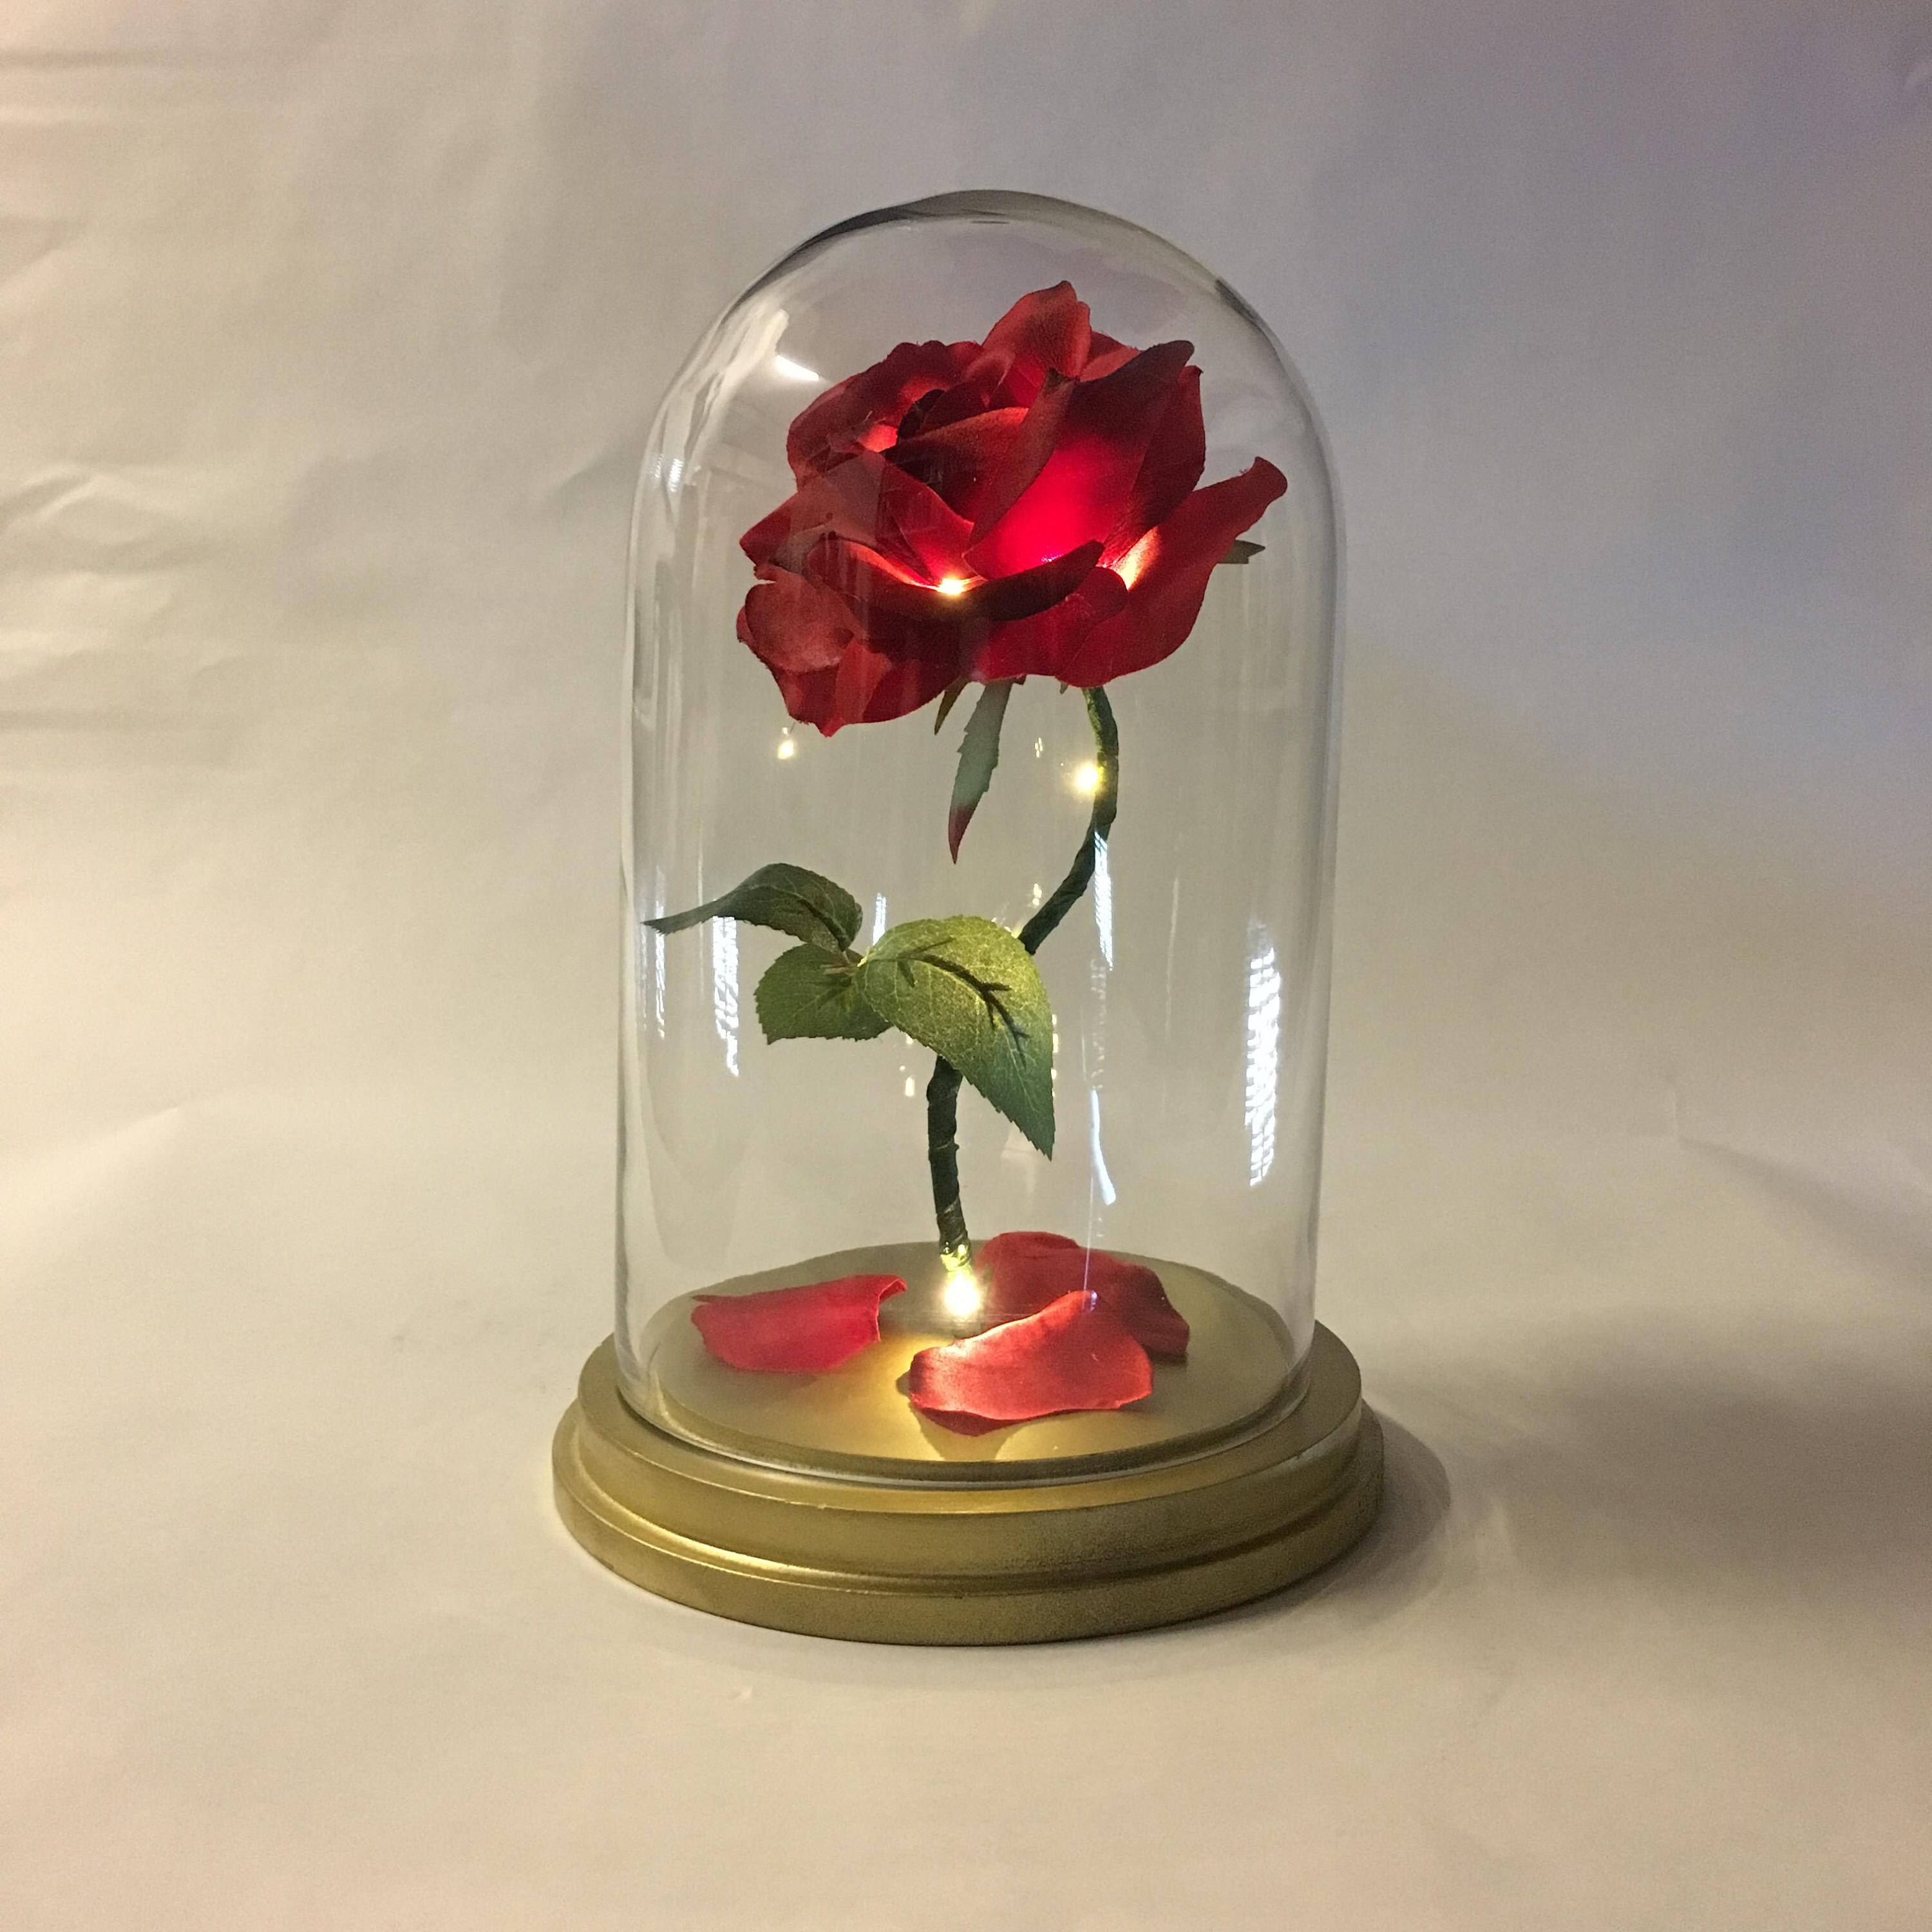 Enchanted Rose Beauty And The Beast Rose Anniversary Wedding